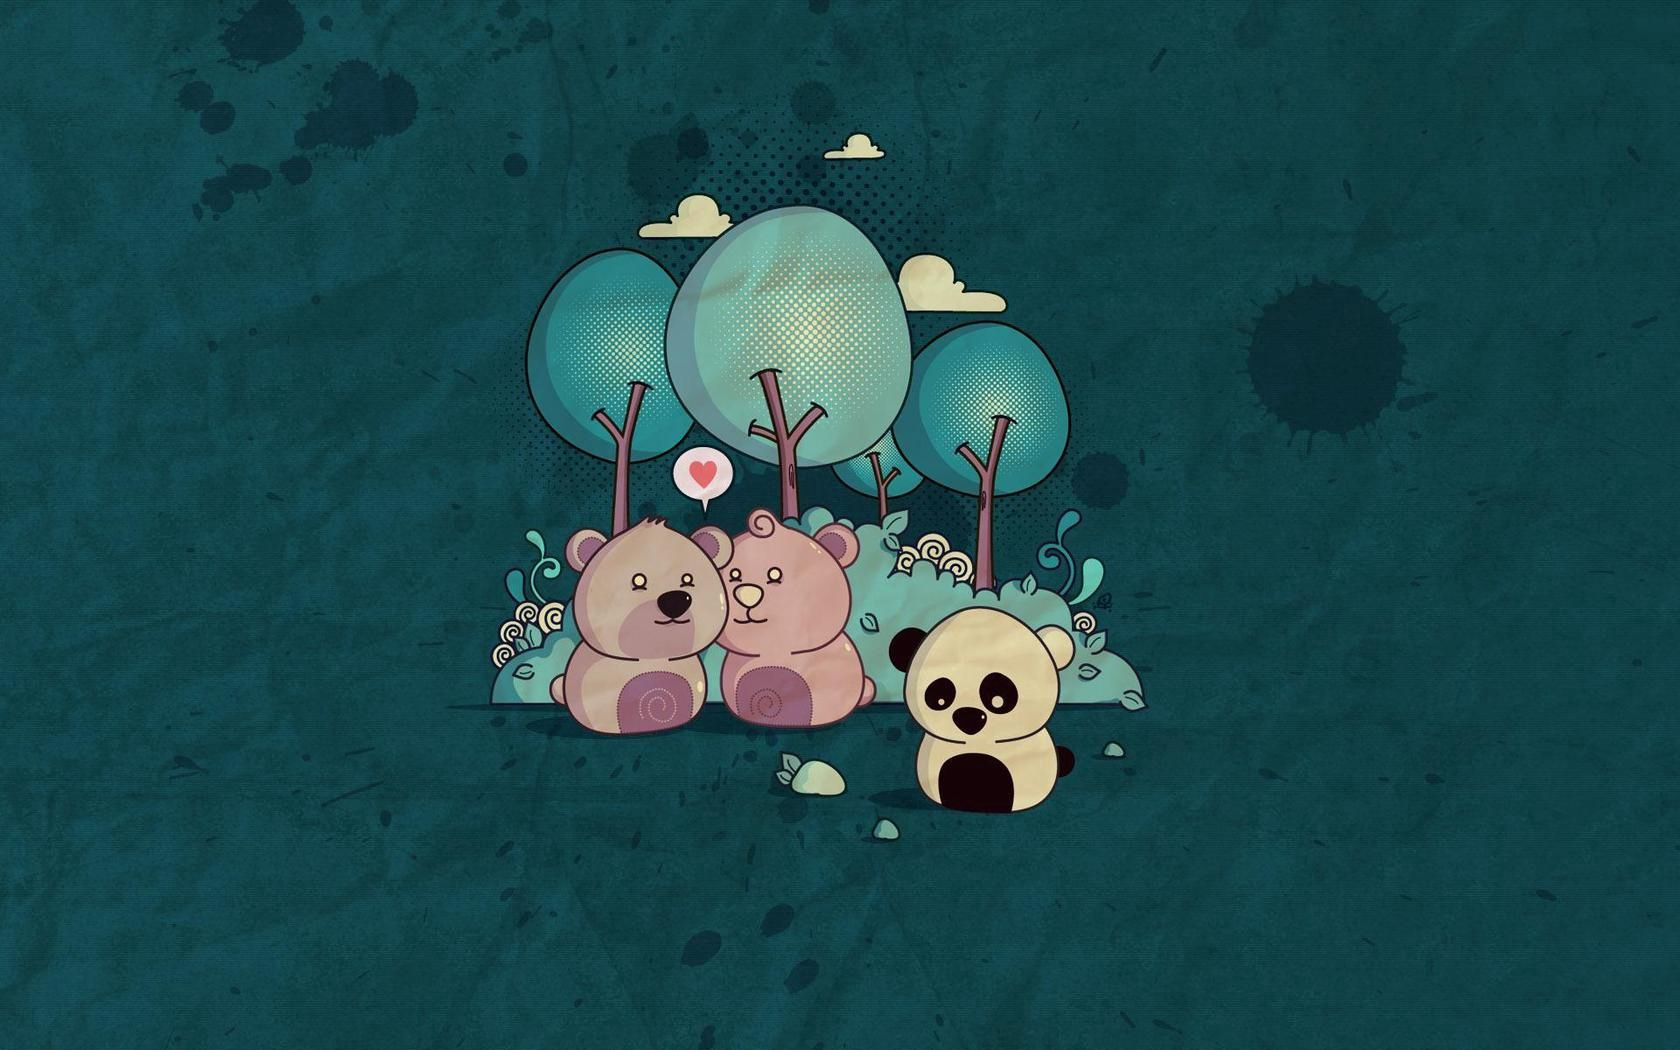 120196 download wallpaper Art, Bear, Trees, Paper, Pandas screensavers and pictures for free